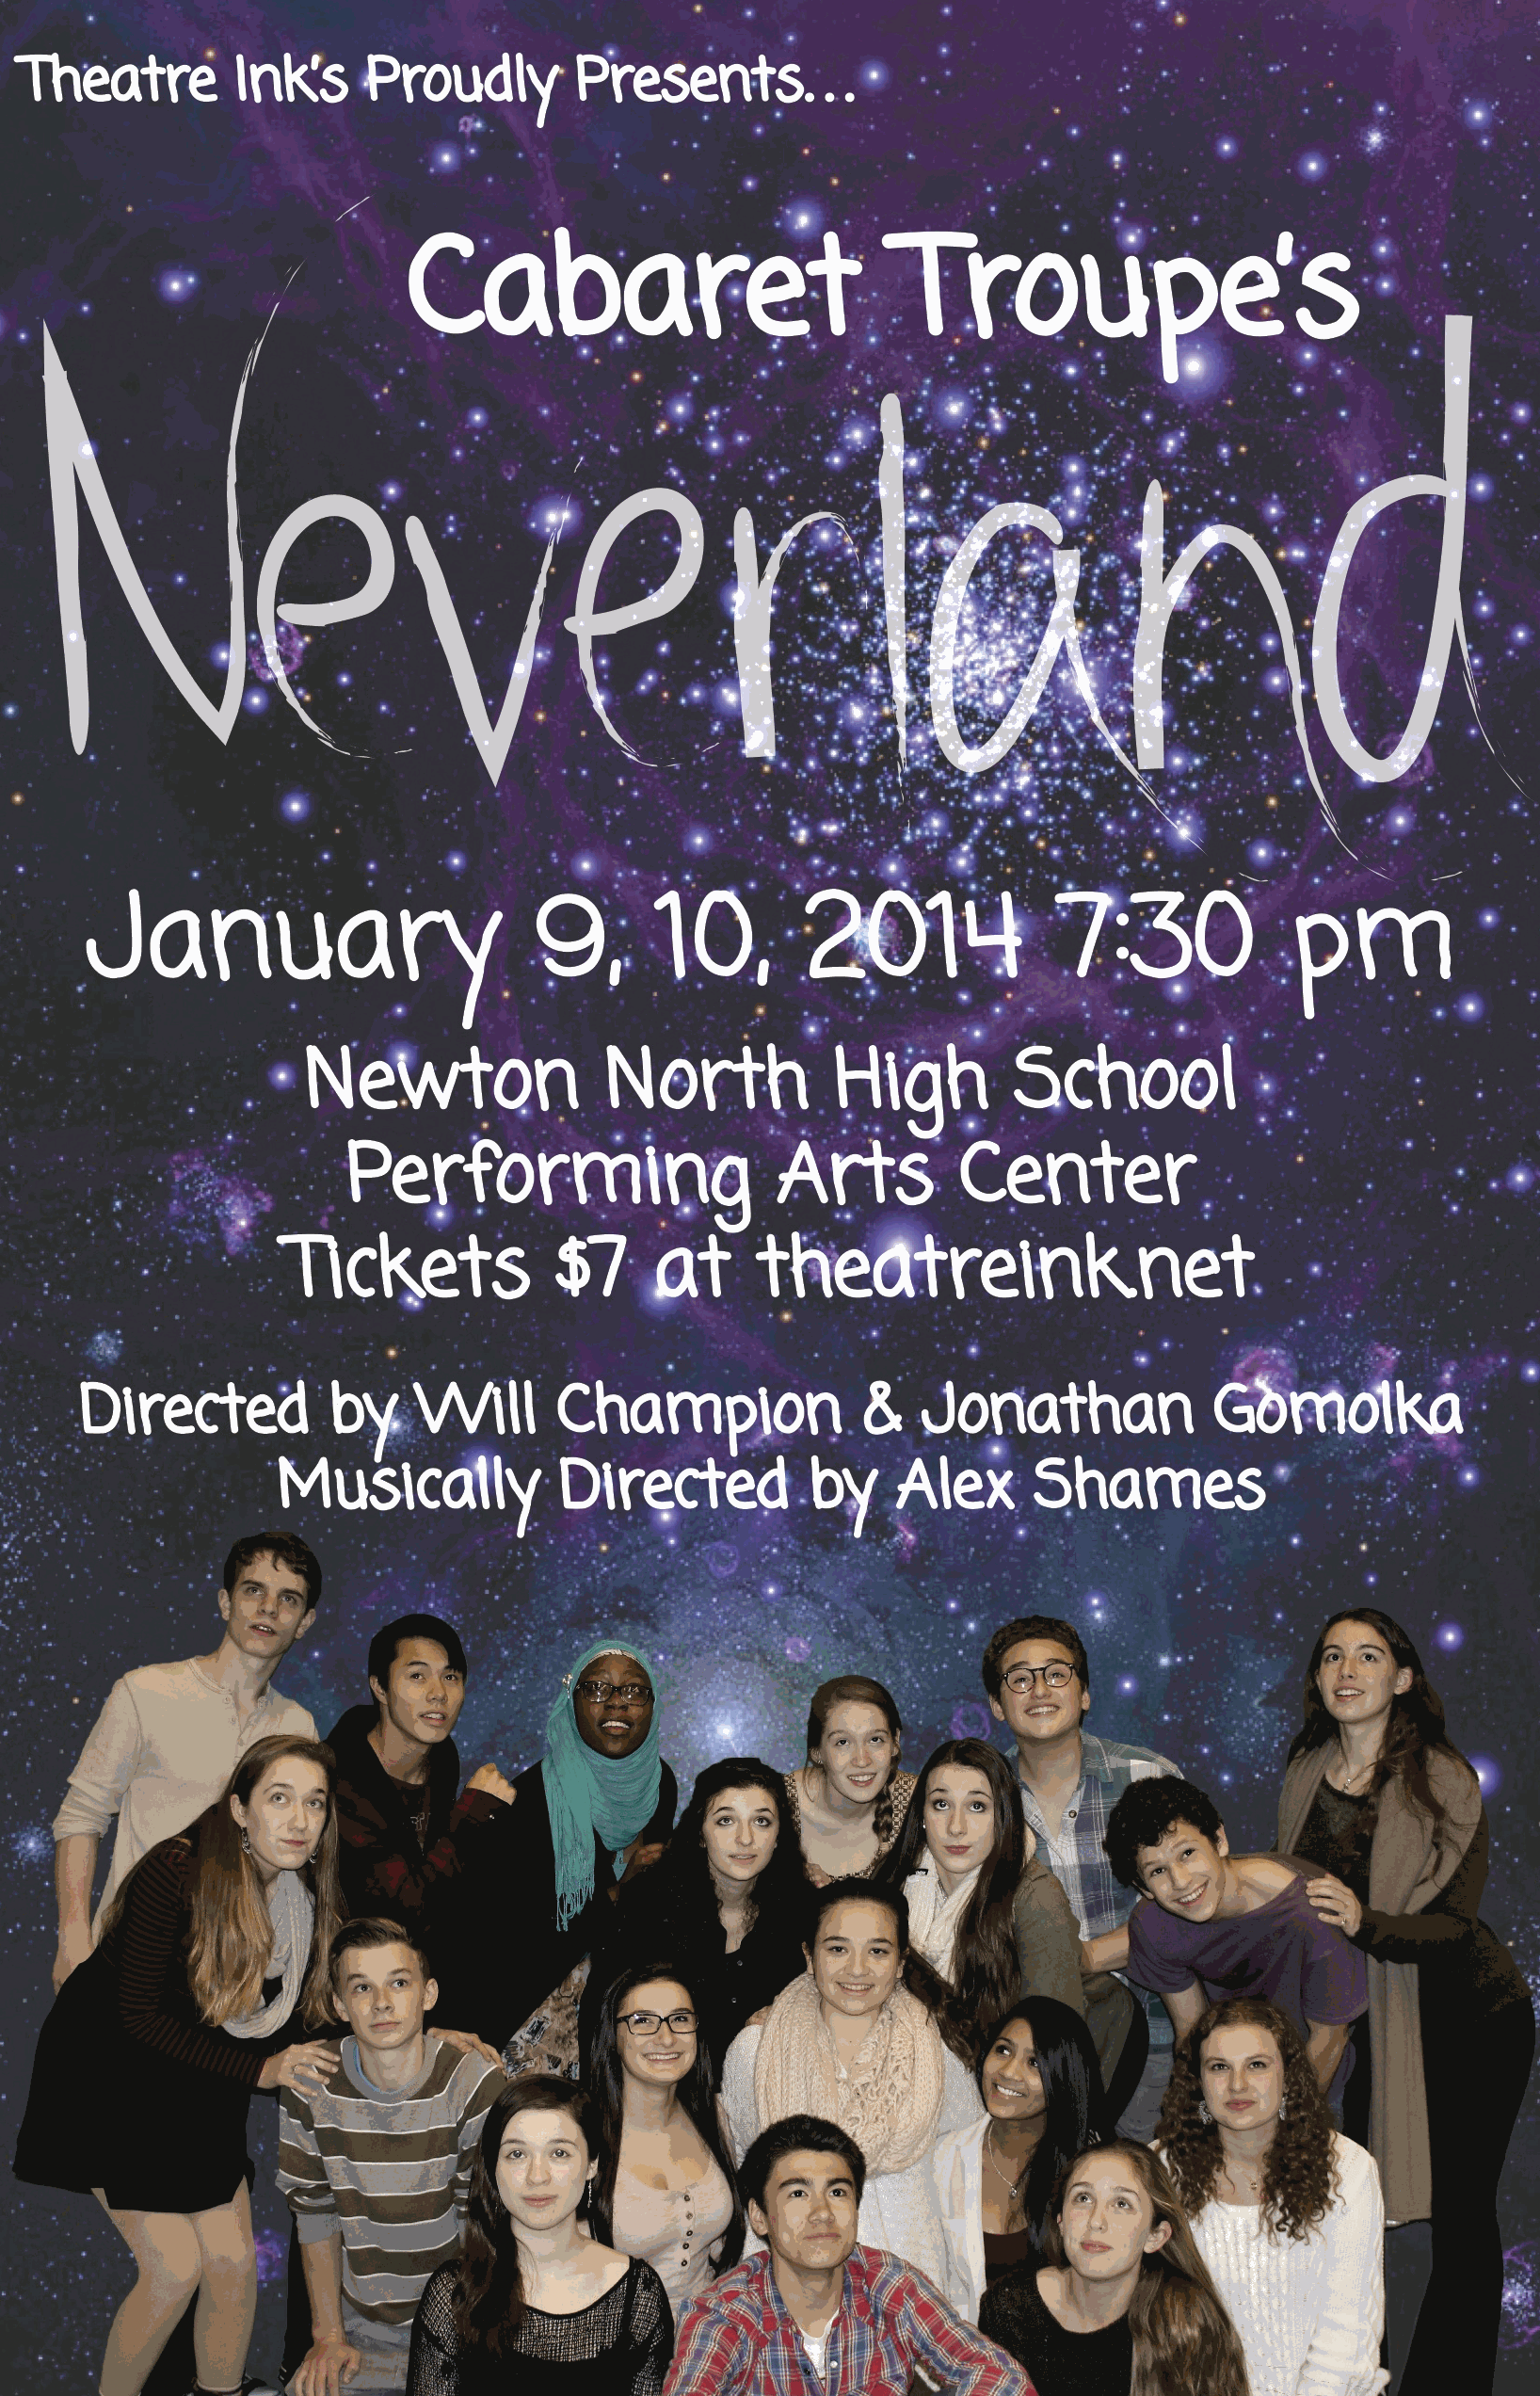 Cabaret Troupe coming January 9 and 10 at NNHS